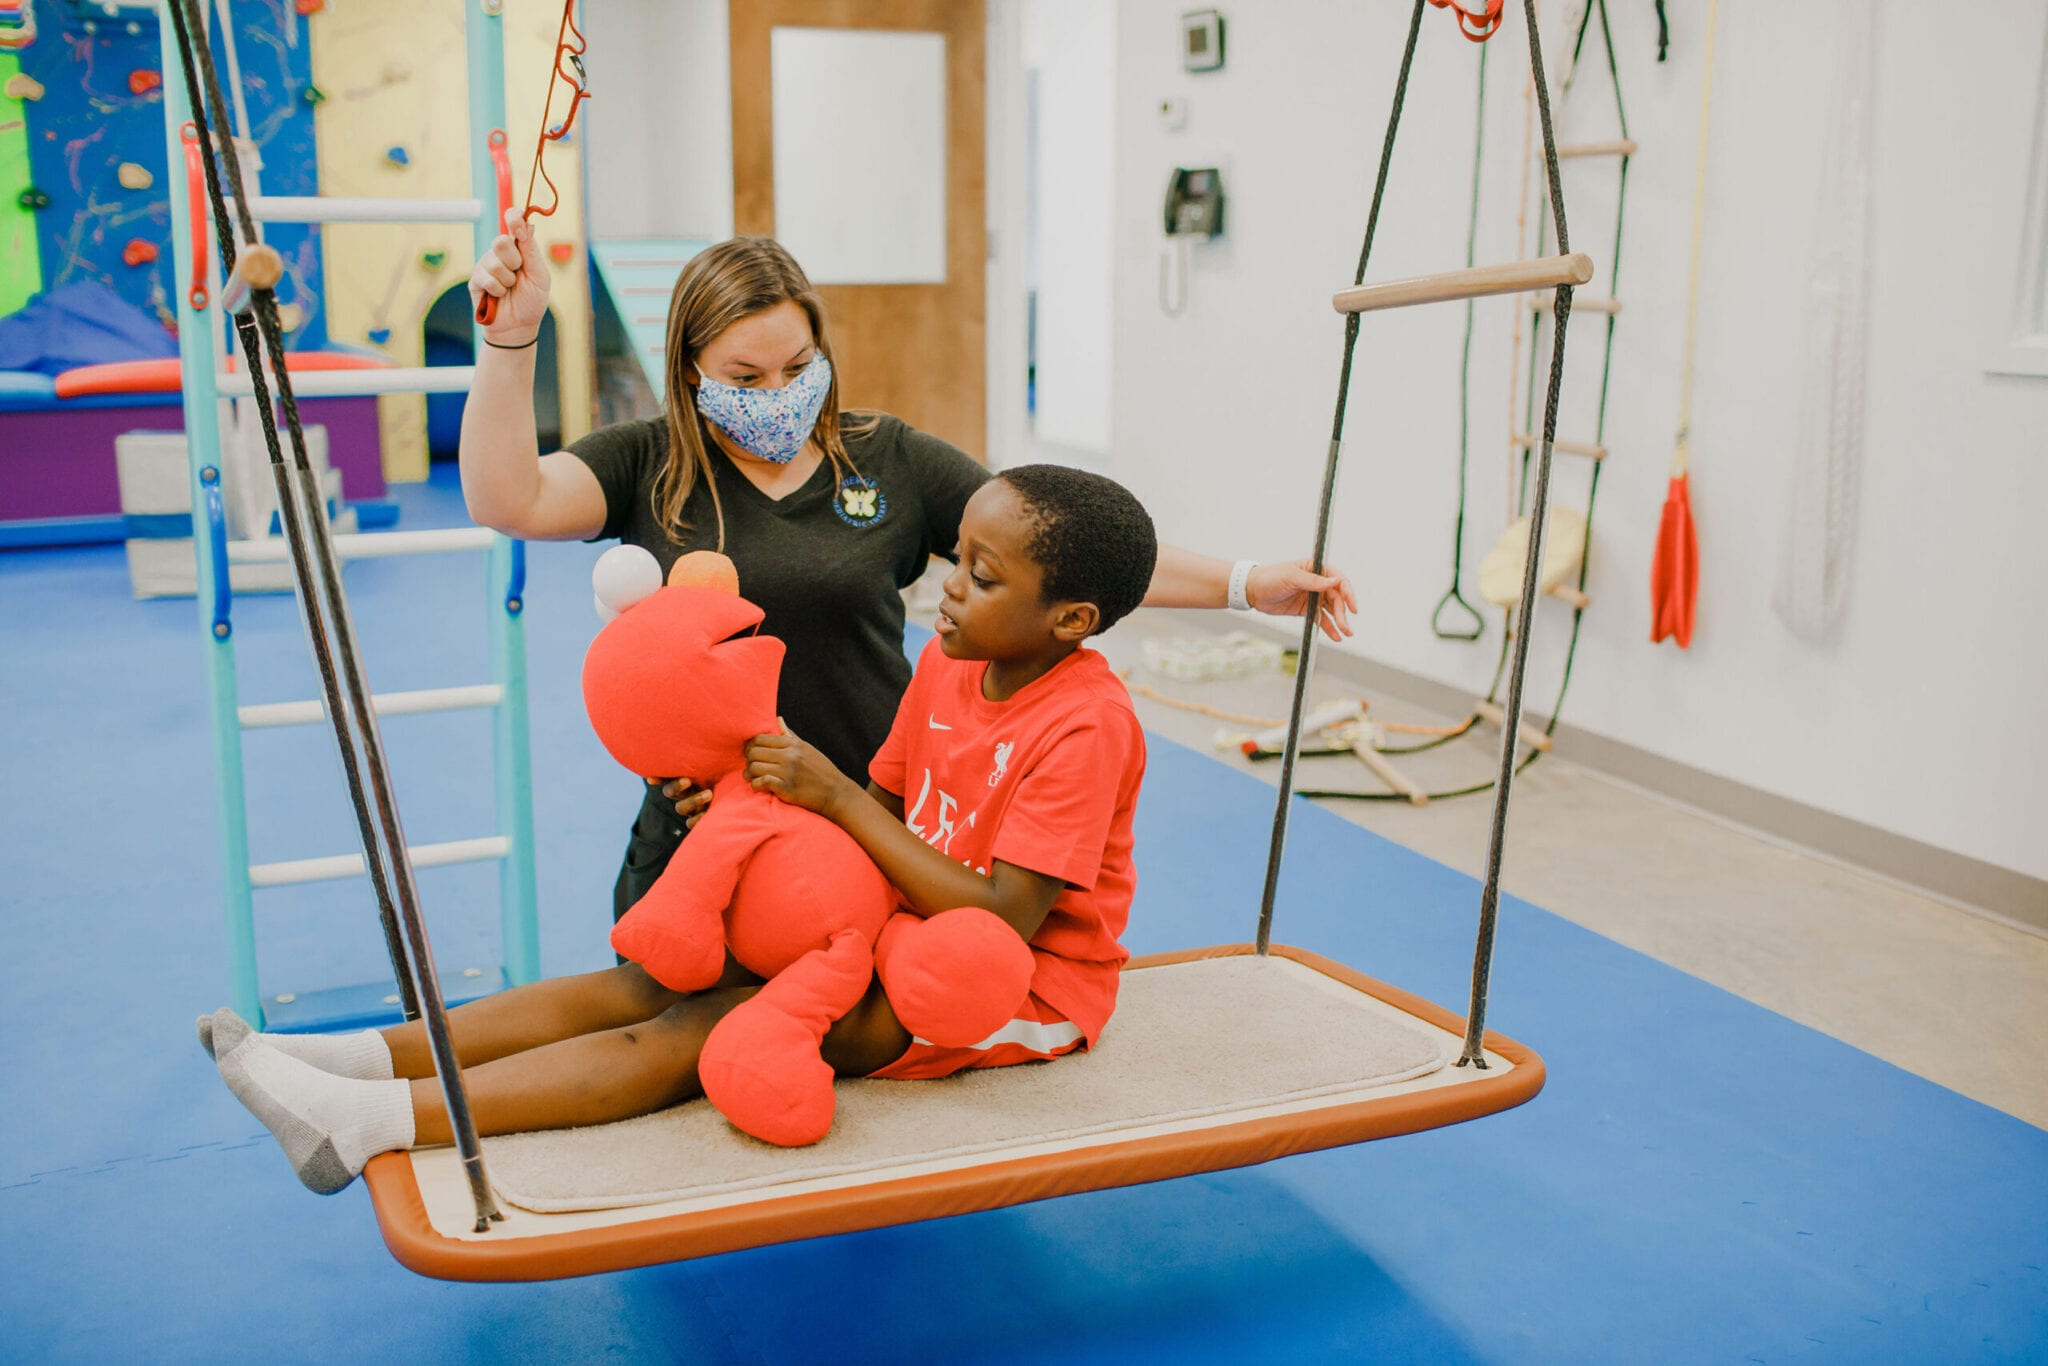 Boy sitting on the platform swing with an Elmo doll while an Occupational Therapist rocks the swing